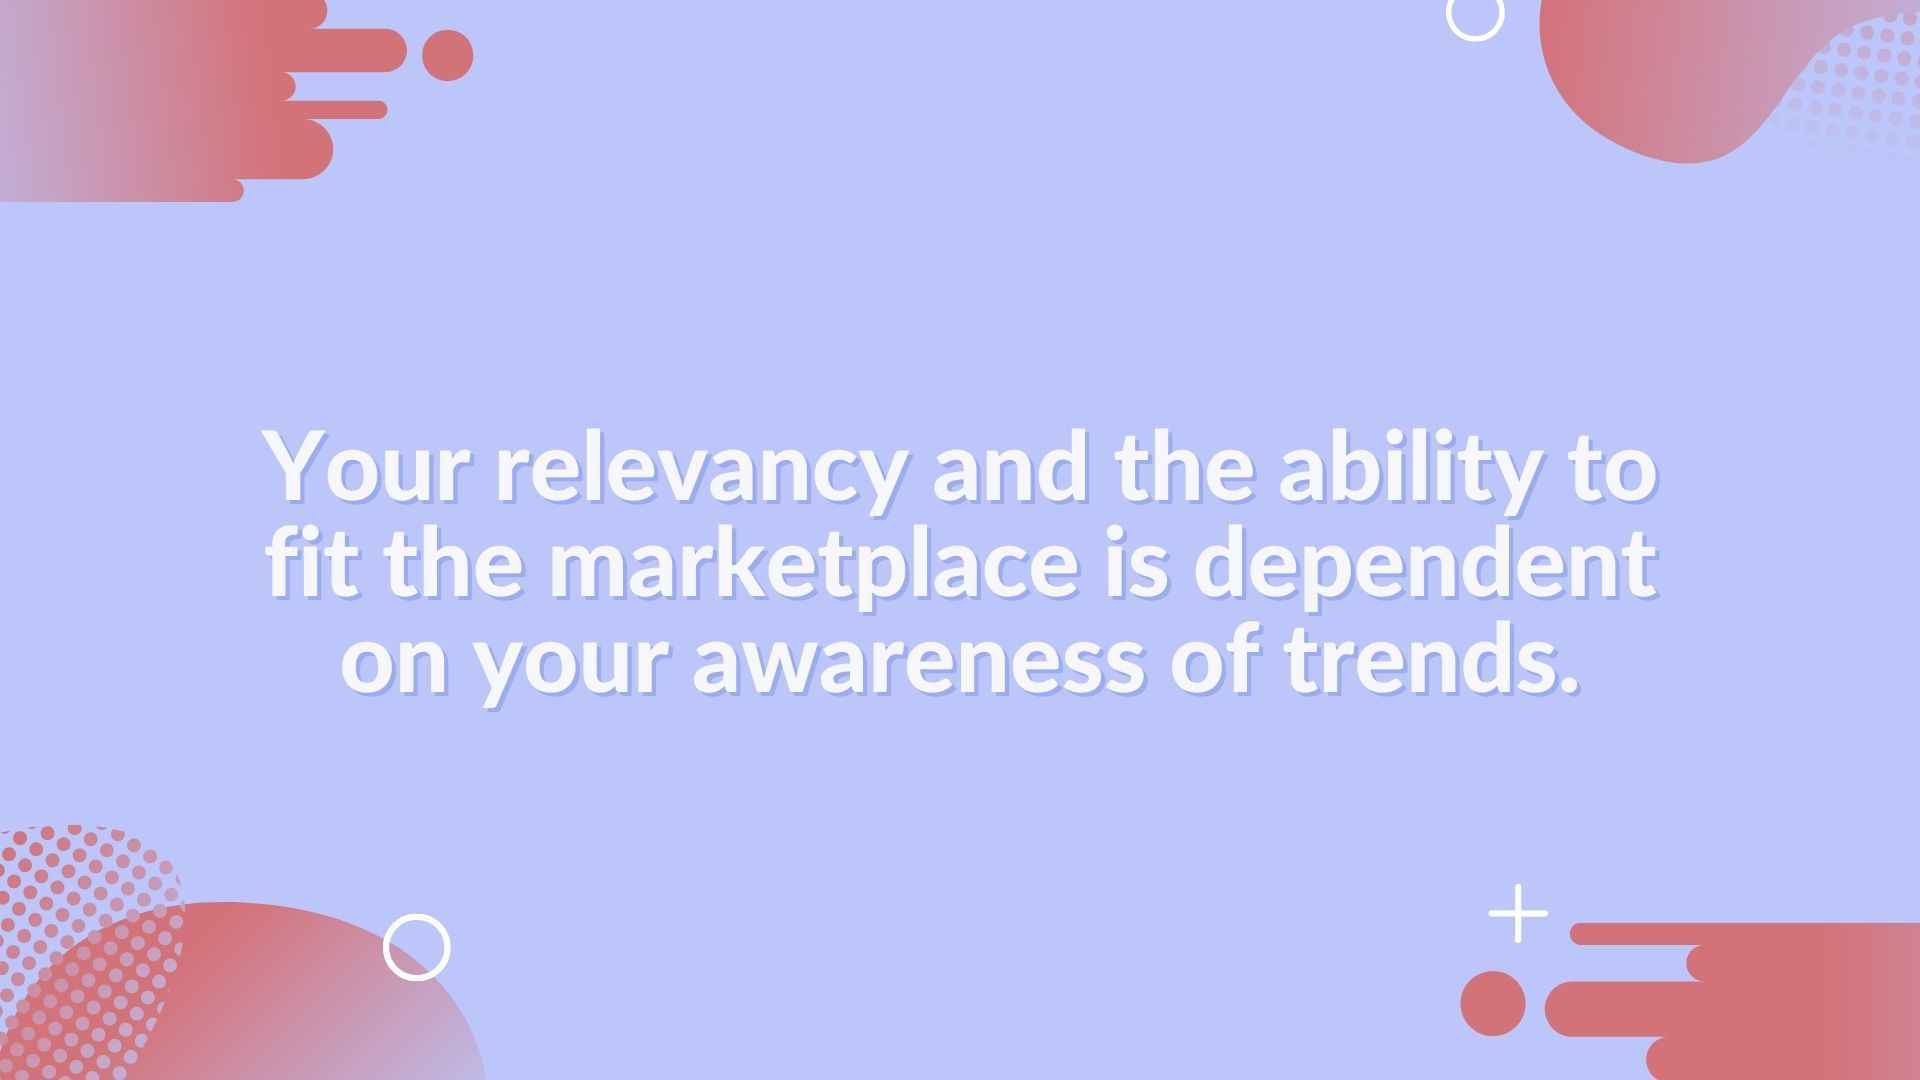 your relevancy and the ability to fit the marketplace is dependent on your awareness of trends - trends in marketing